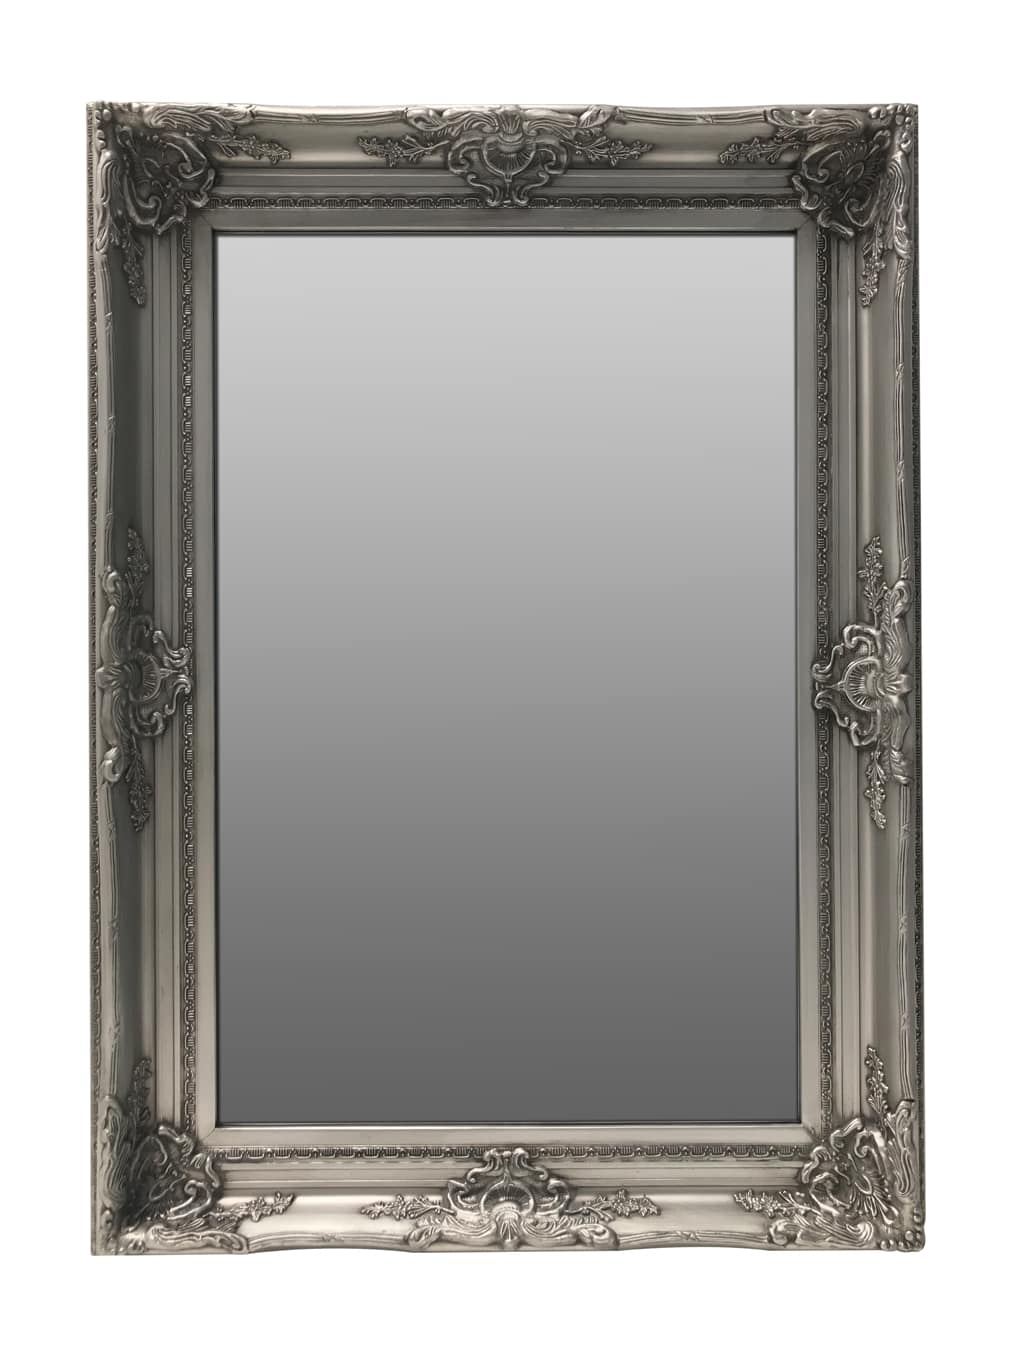 Swept Frame Accent Mirror with Bevelled Glass